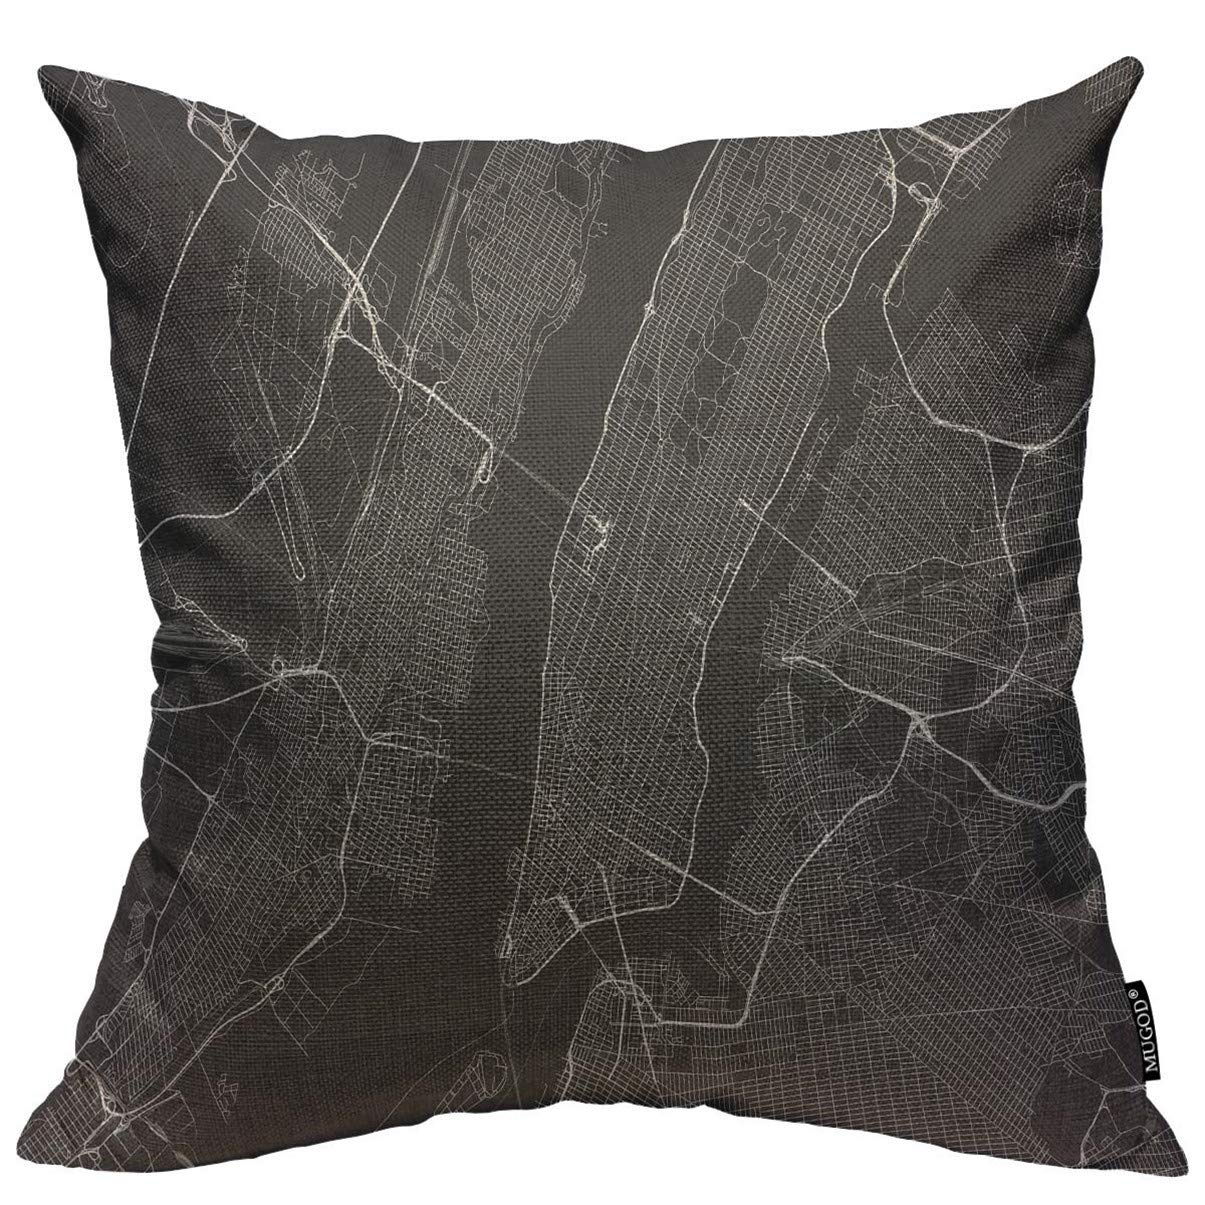 Mugod Throw Pillow Cover Black City with All Streets of New York Surroundings Map White Manhattan NYC Home Decor Square Pillow Case for Men Women Bedroom Livingroom Cushion Cover 18x18 Inch